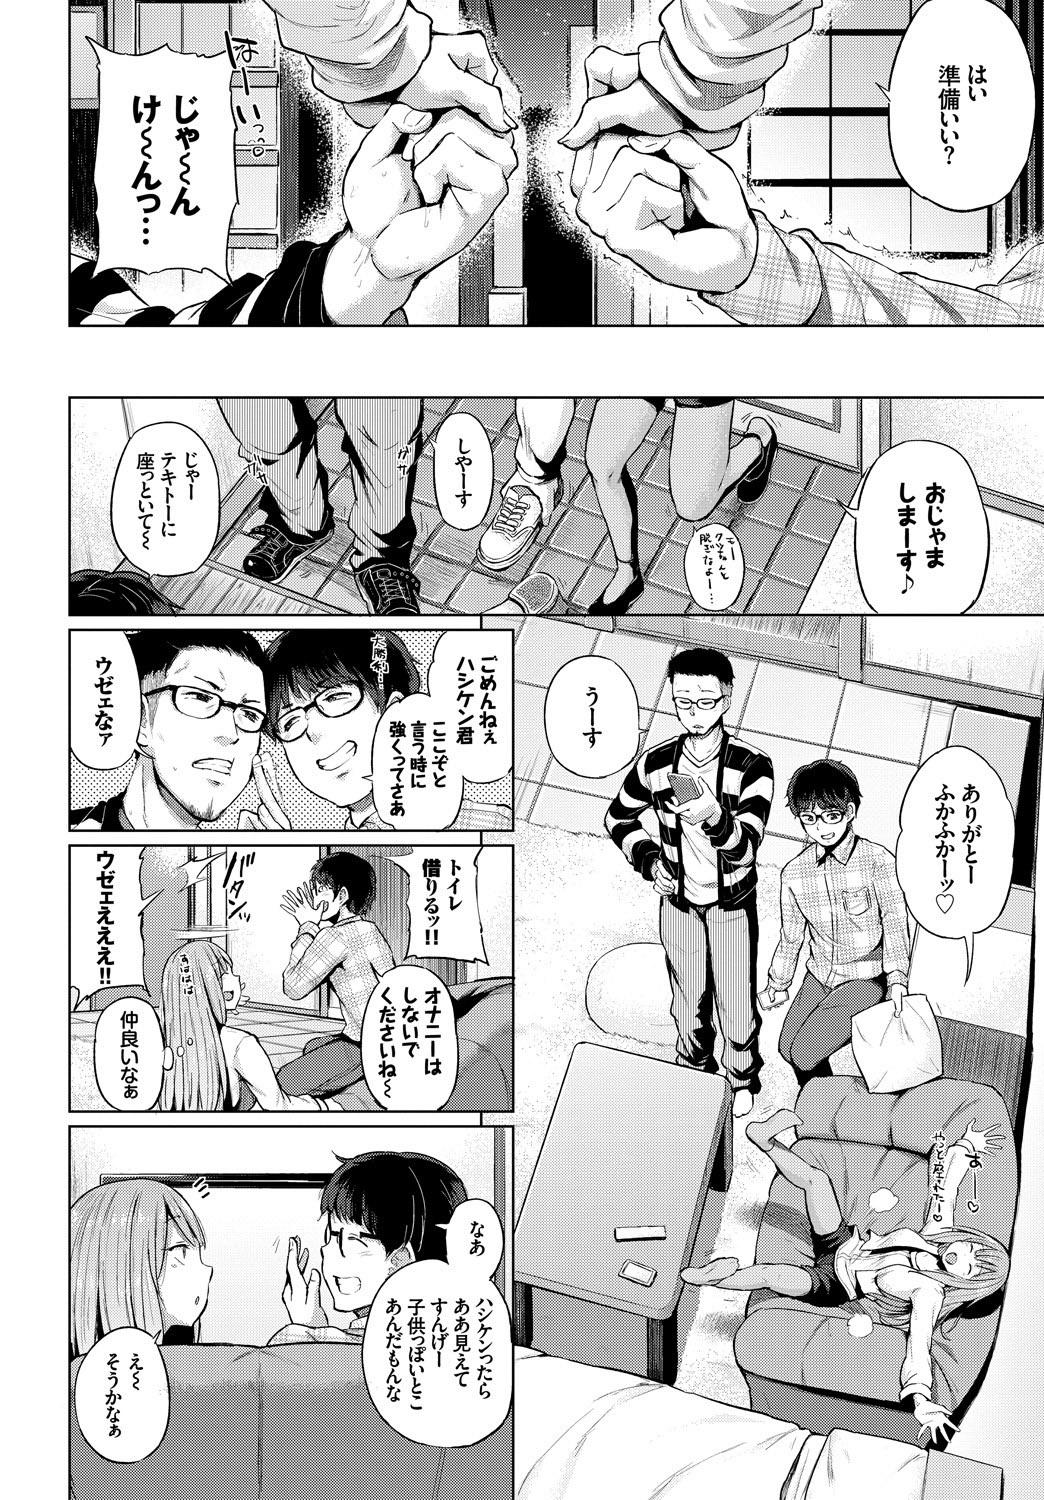 COMIC BAVEL SPECIAL COLLECTION VOL. 7 3